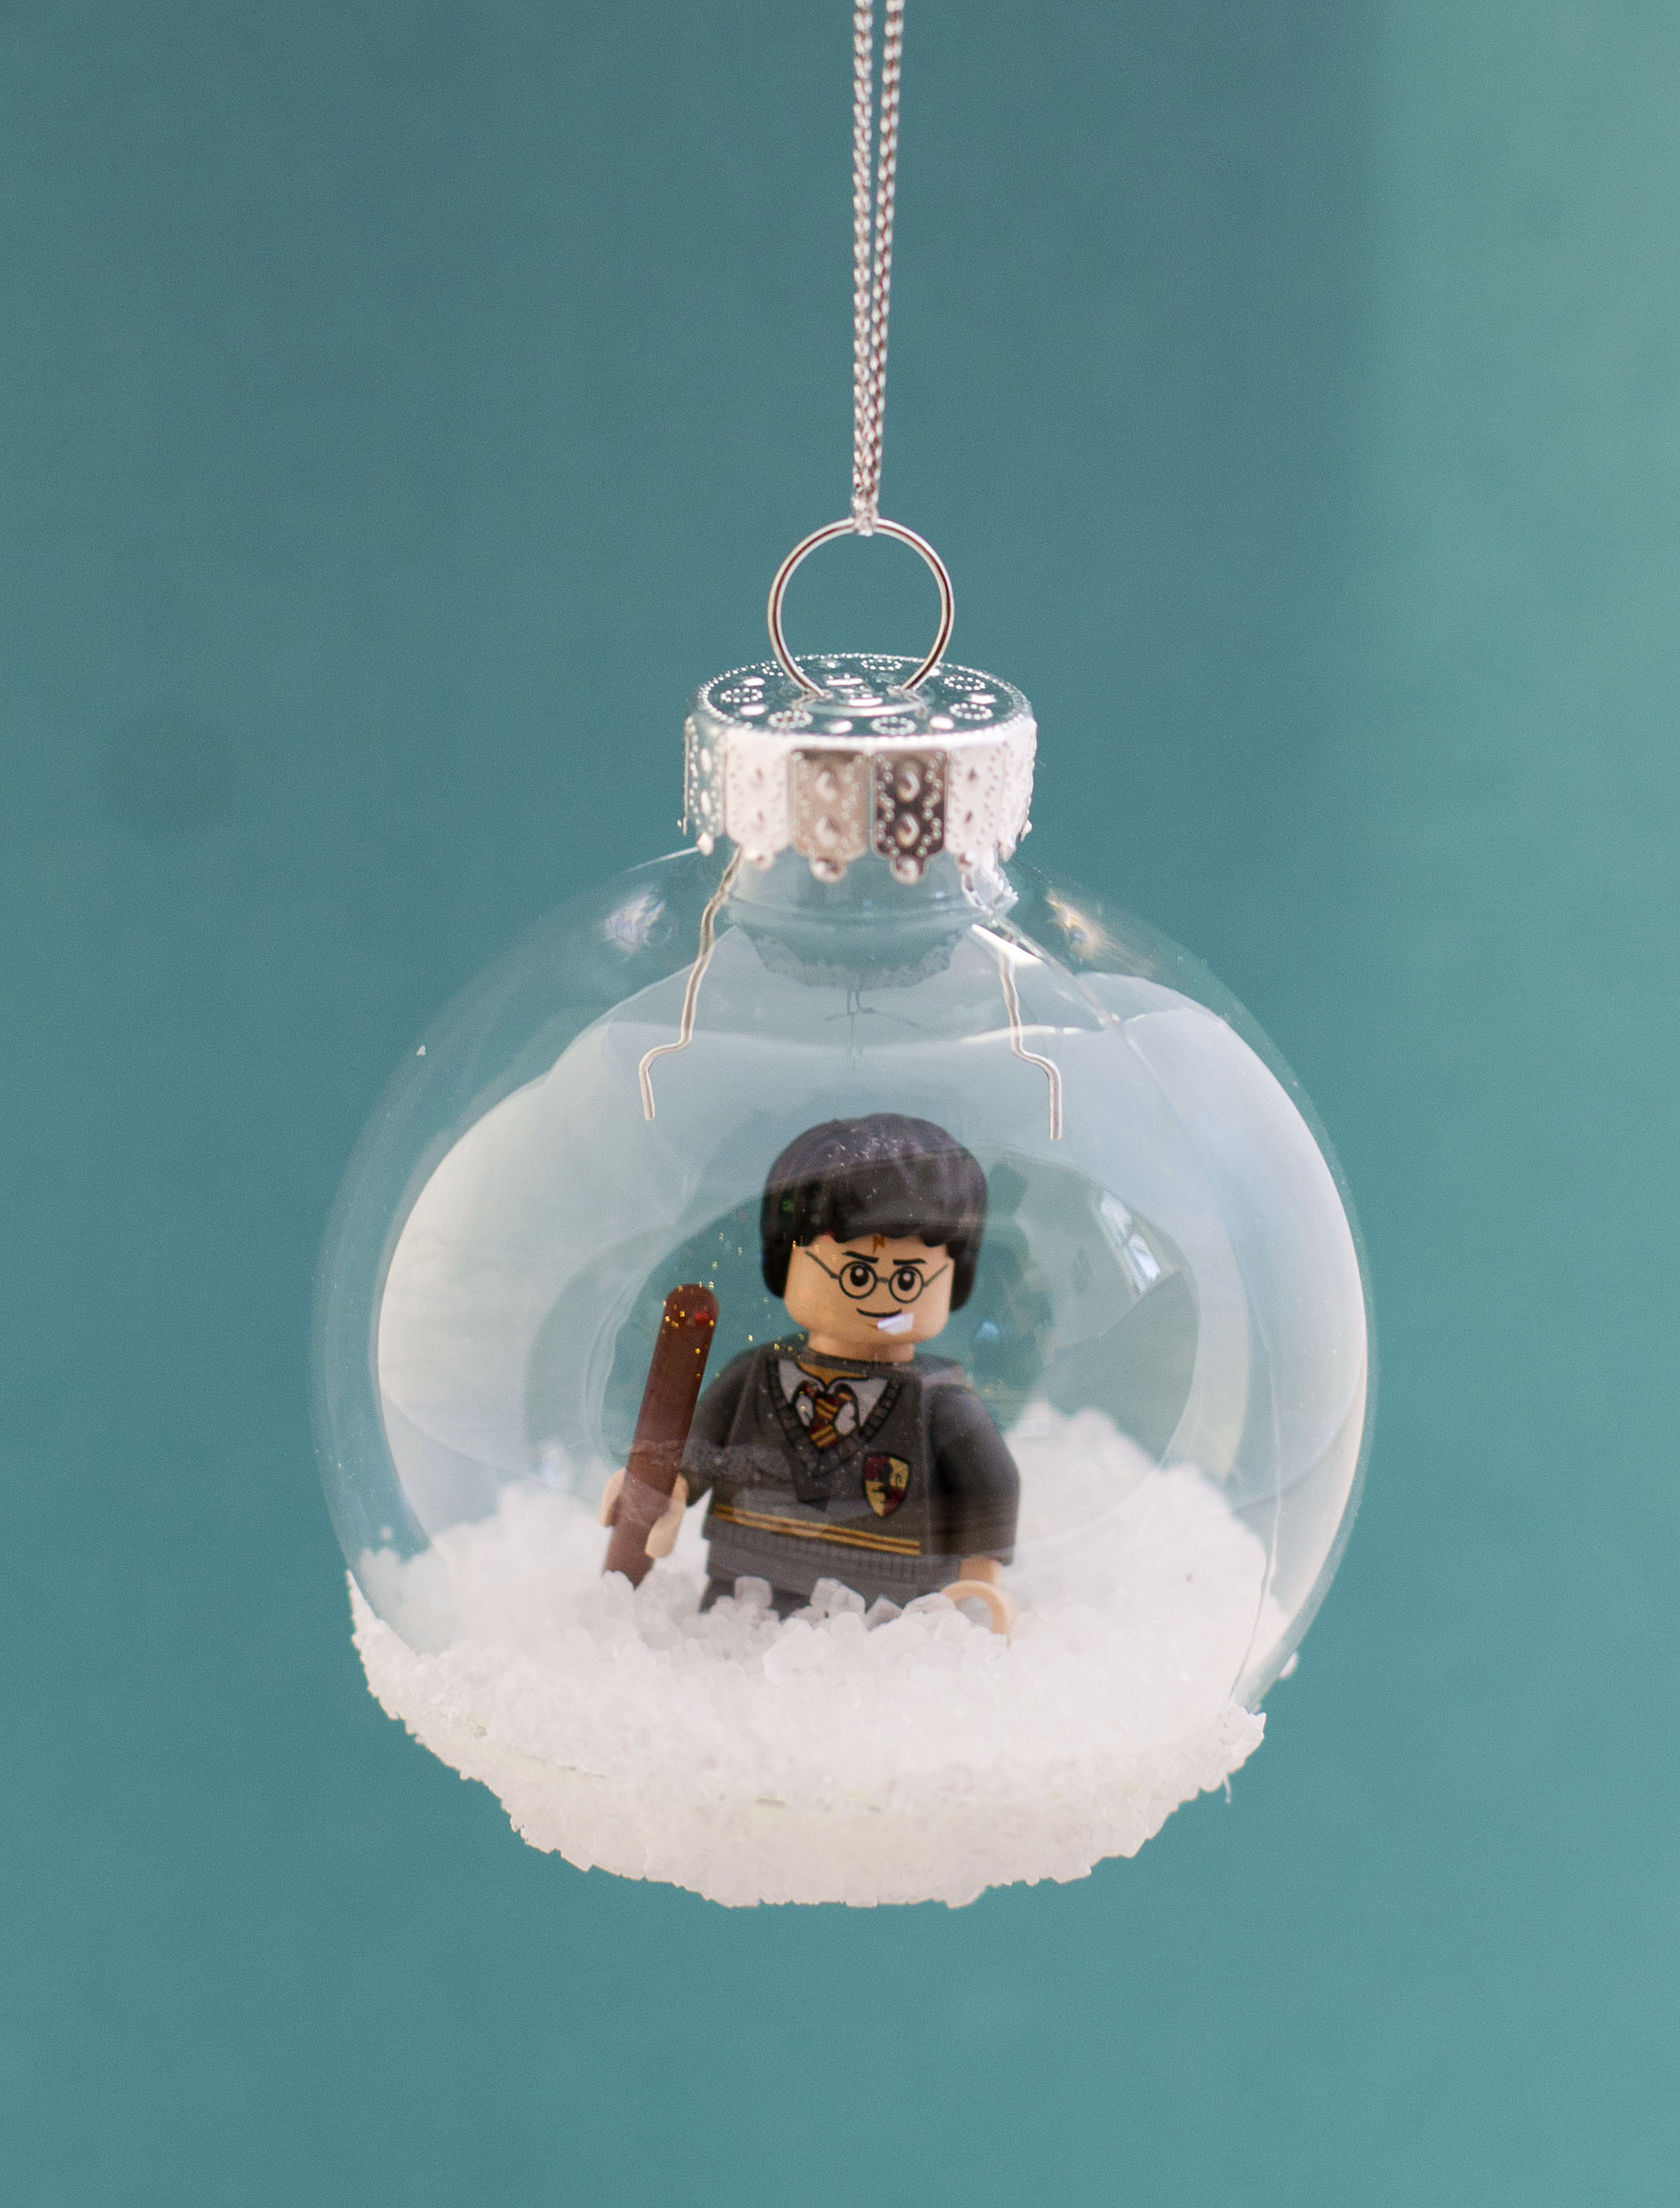 A Harry Potter Lego minifigure enclosed in a plastic Christmas tree ornament bulb. The bulb